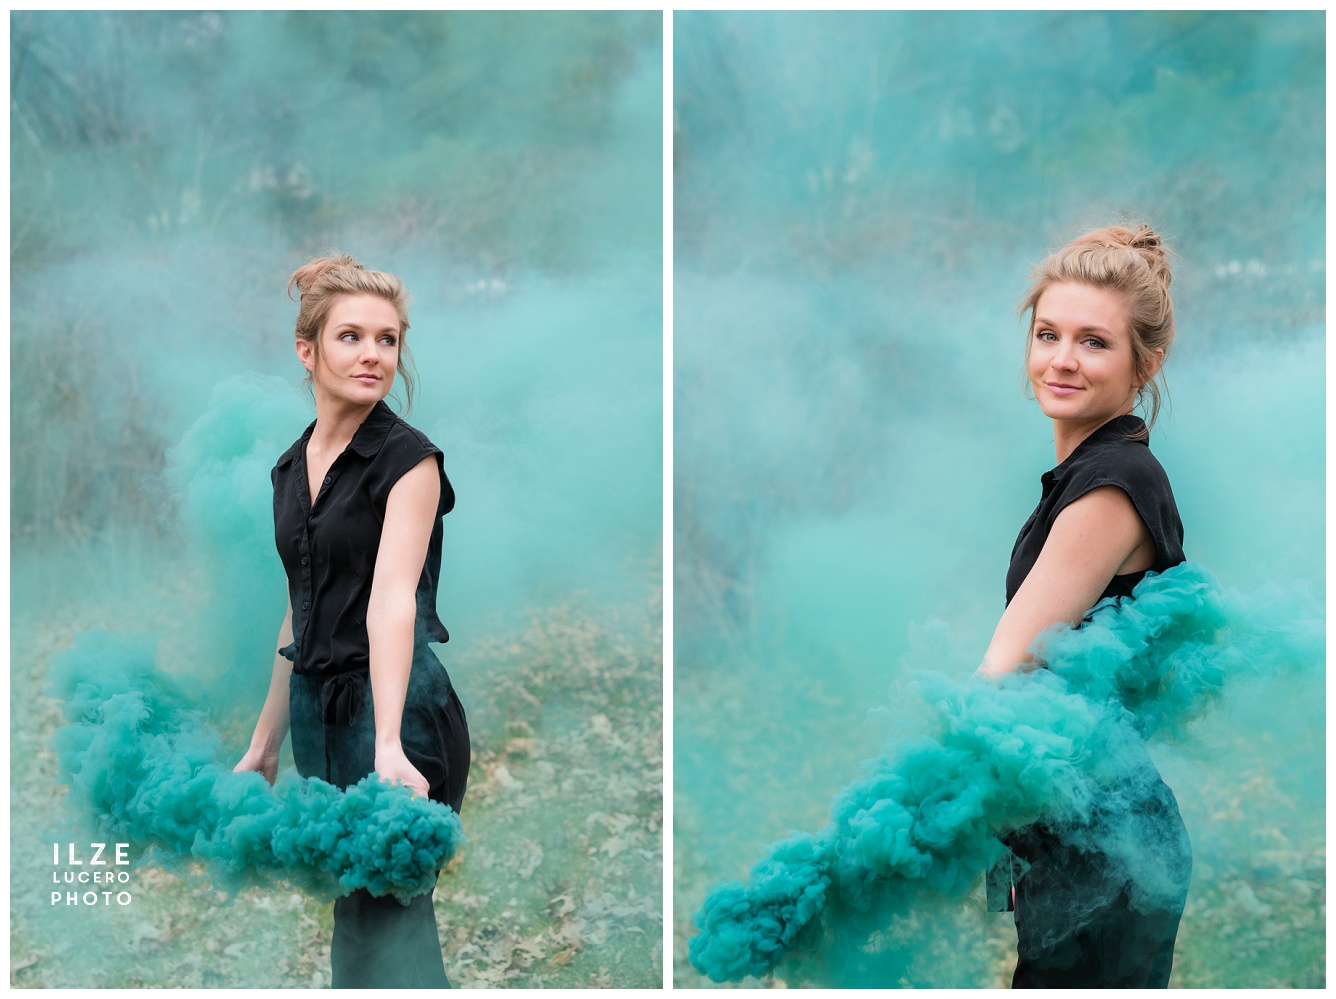 Green Smoke Photo Shoot Michigan Photographer